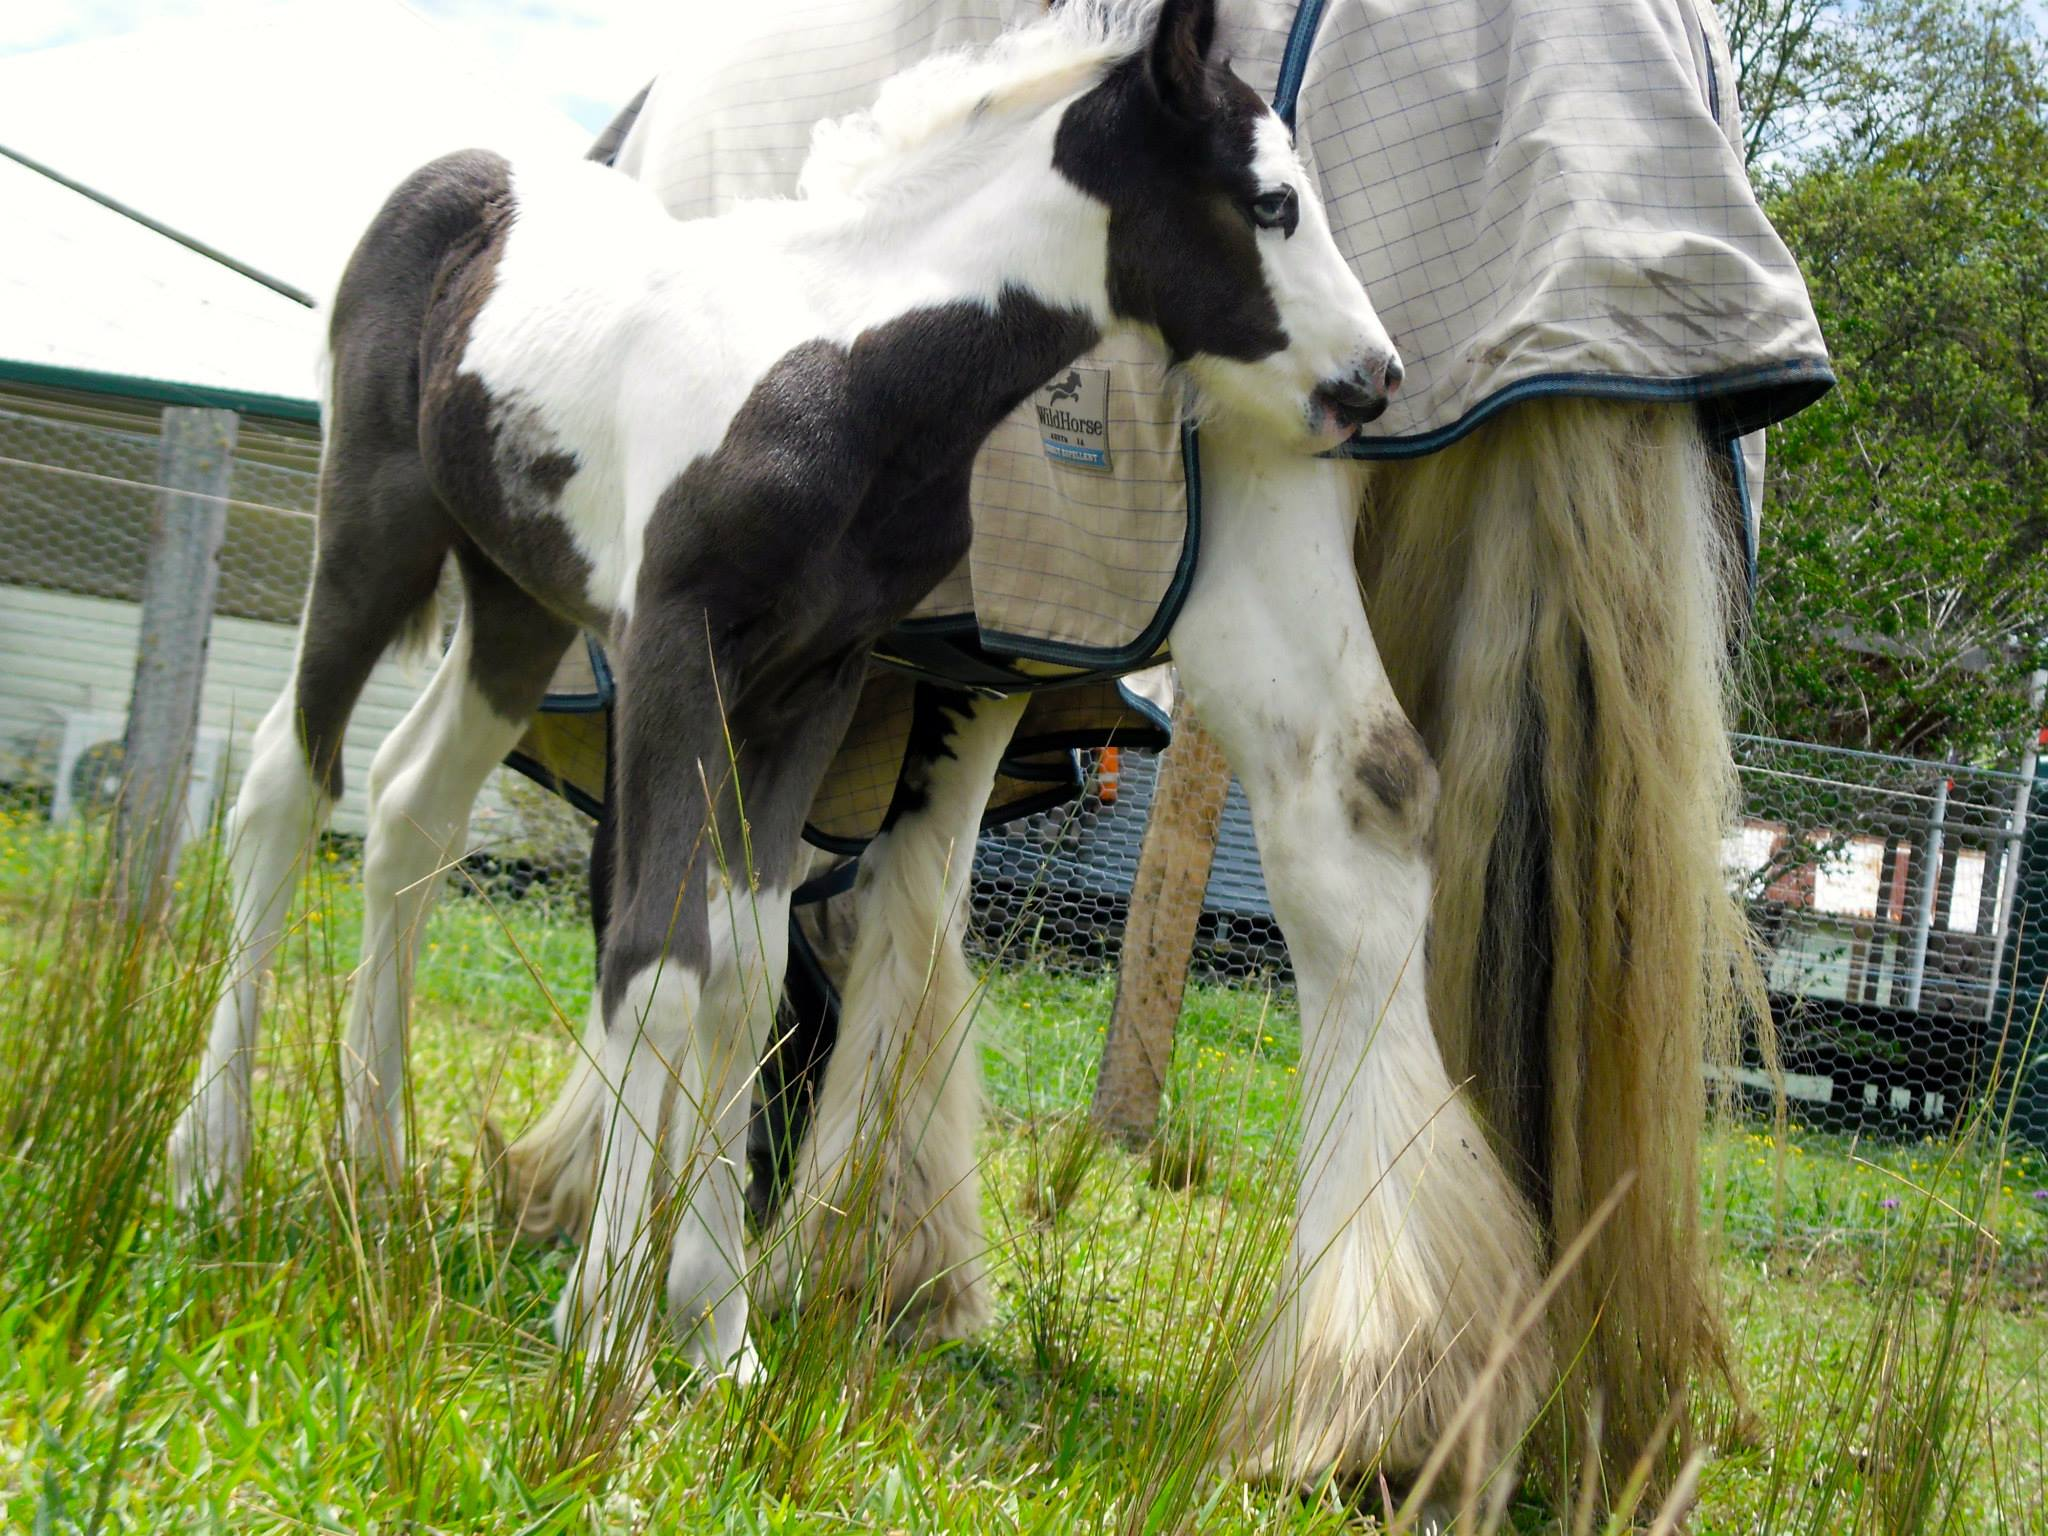 2013 foal by THE PAINTED WARRIOR & Gypsy Elites Amelia, owned by Homeleigh Gypsy Cobs